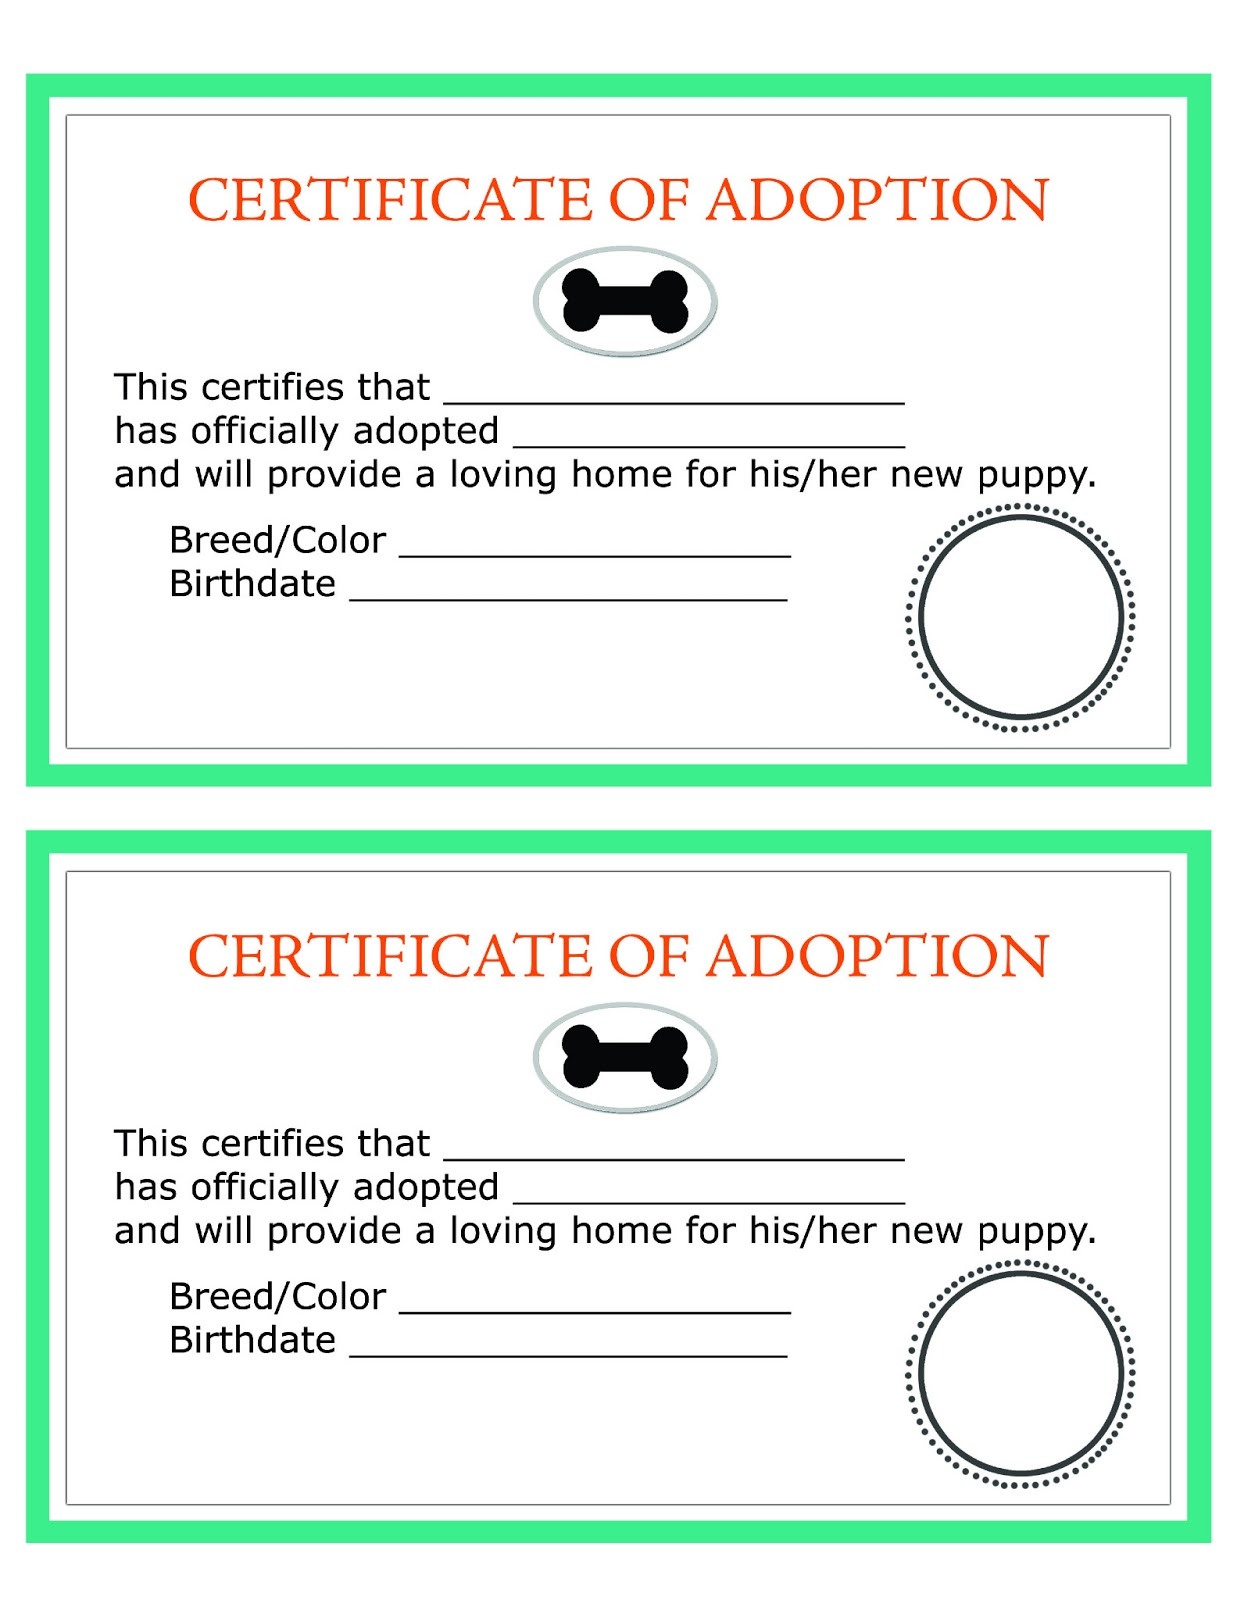 Adoption essay topics